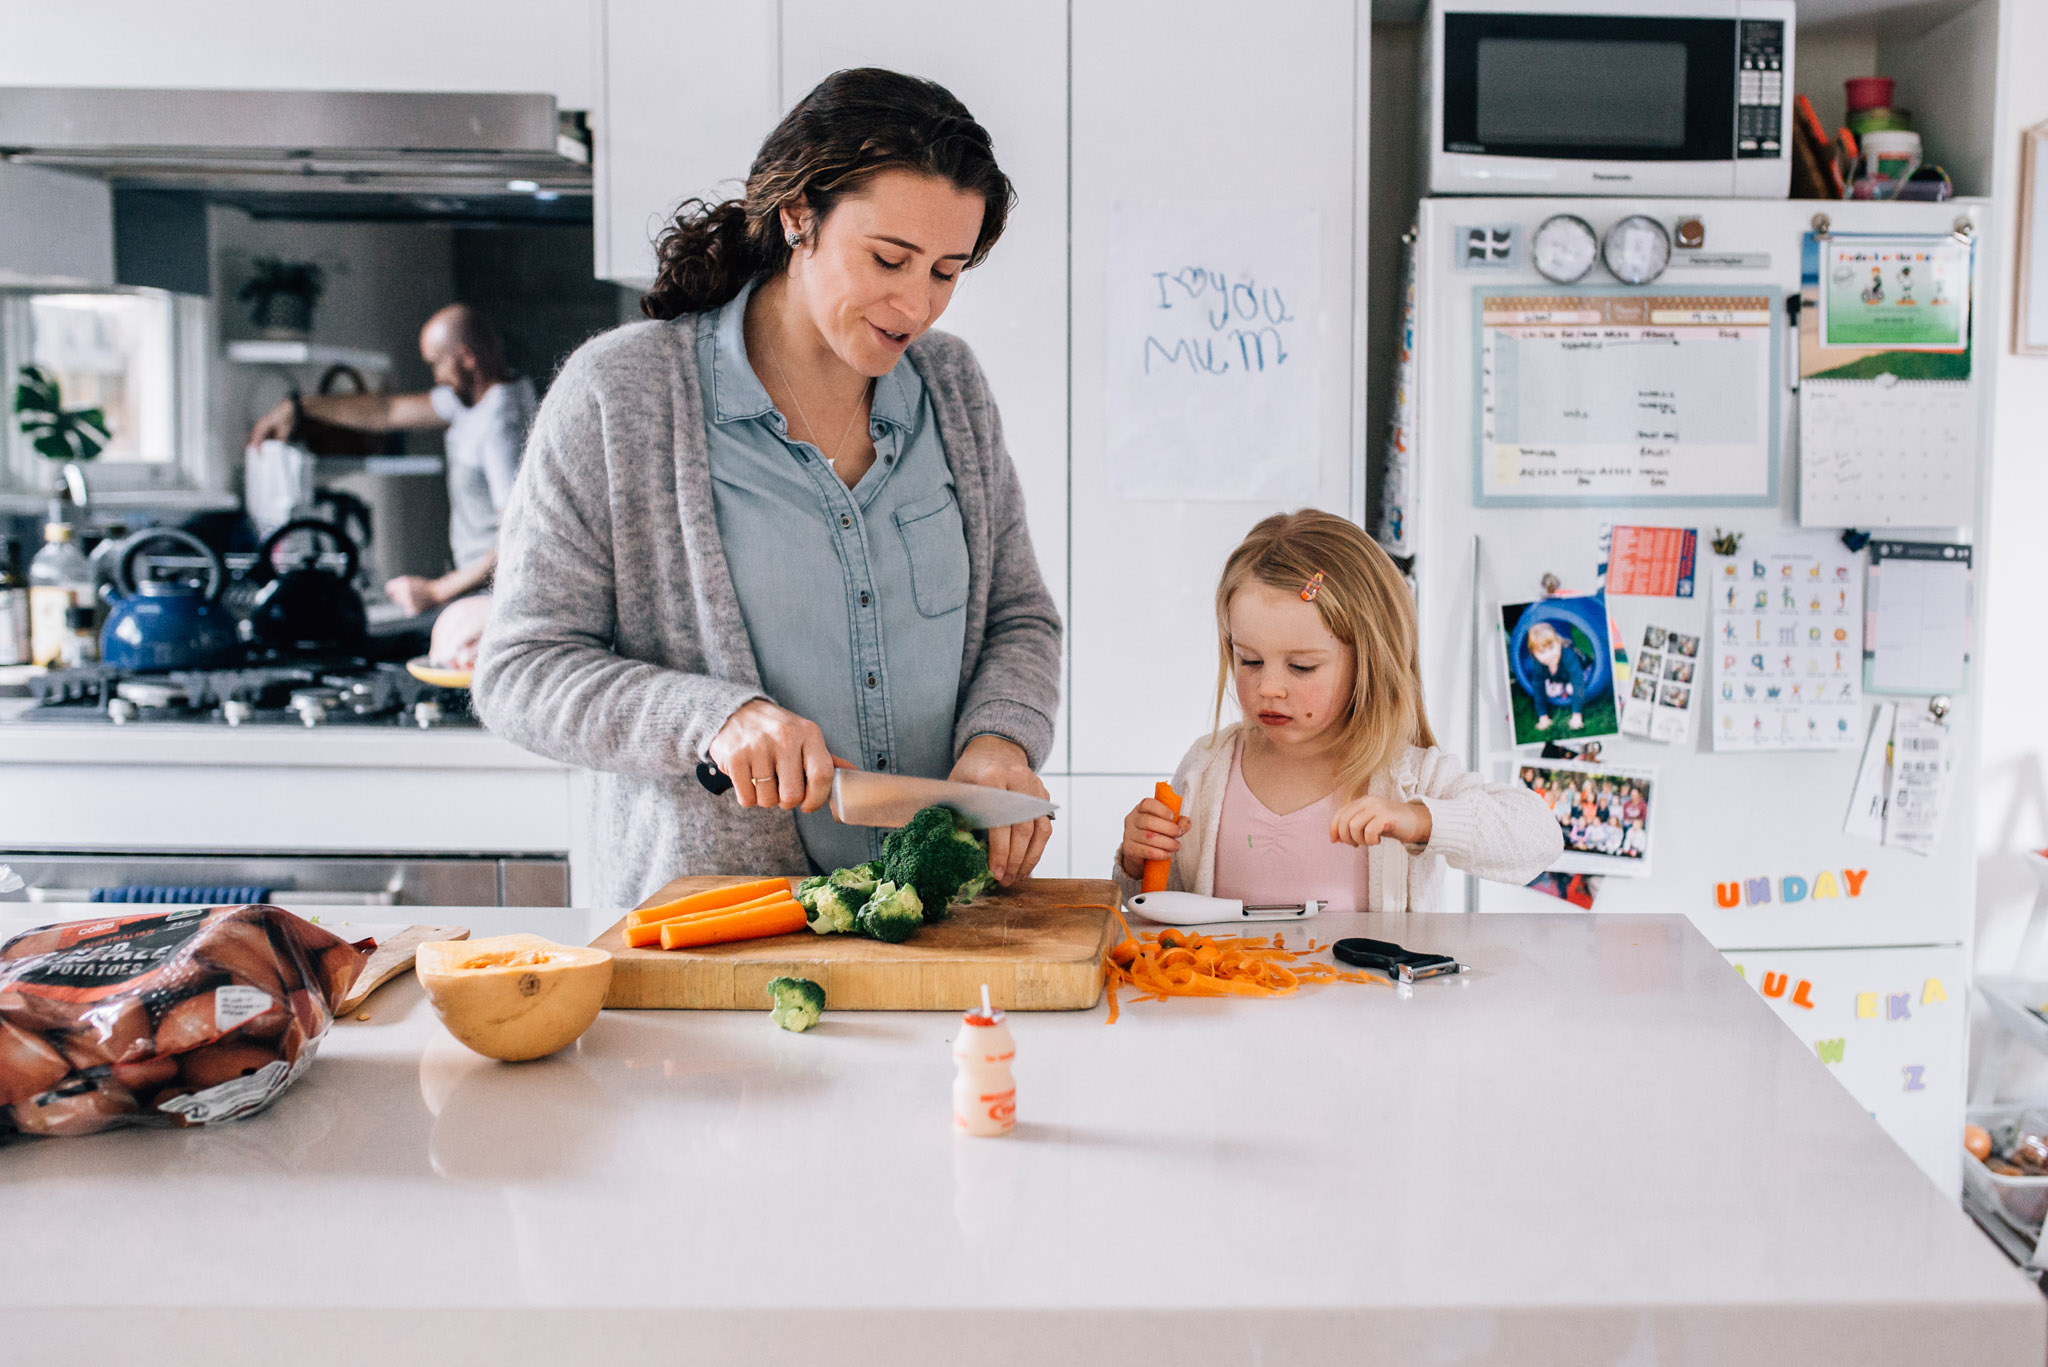 Mother and daughter chopping carrots.